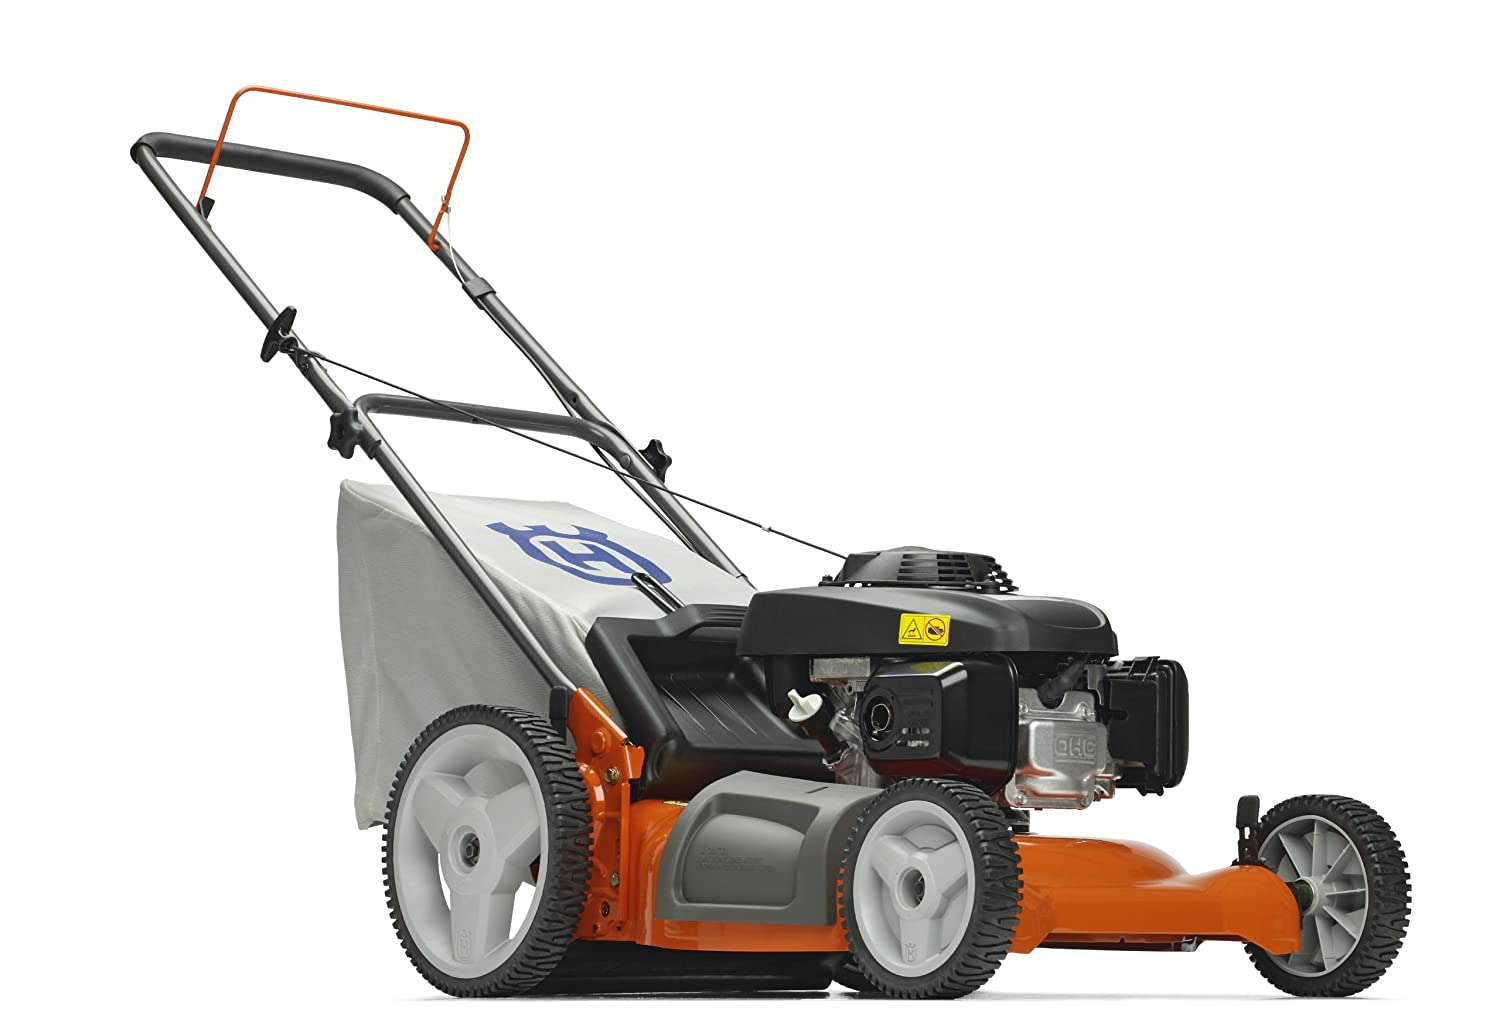 Lawn Mower With High Rear…